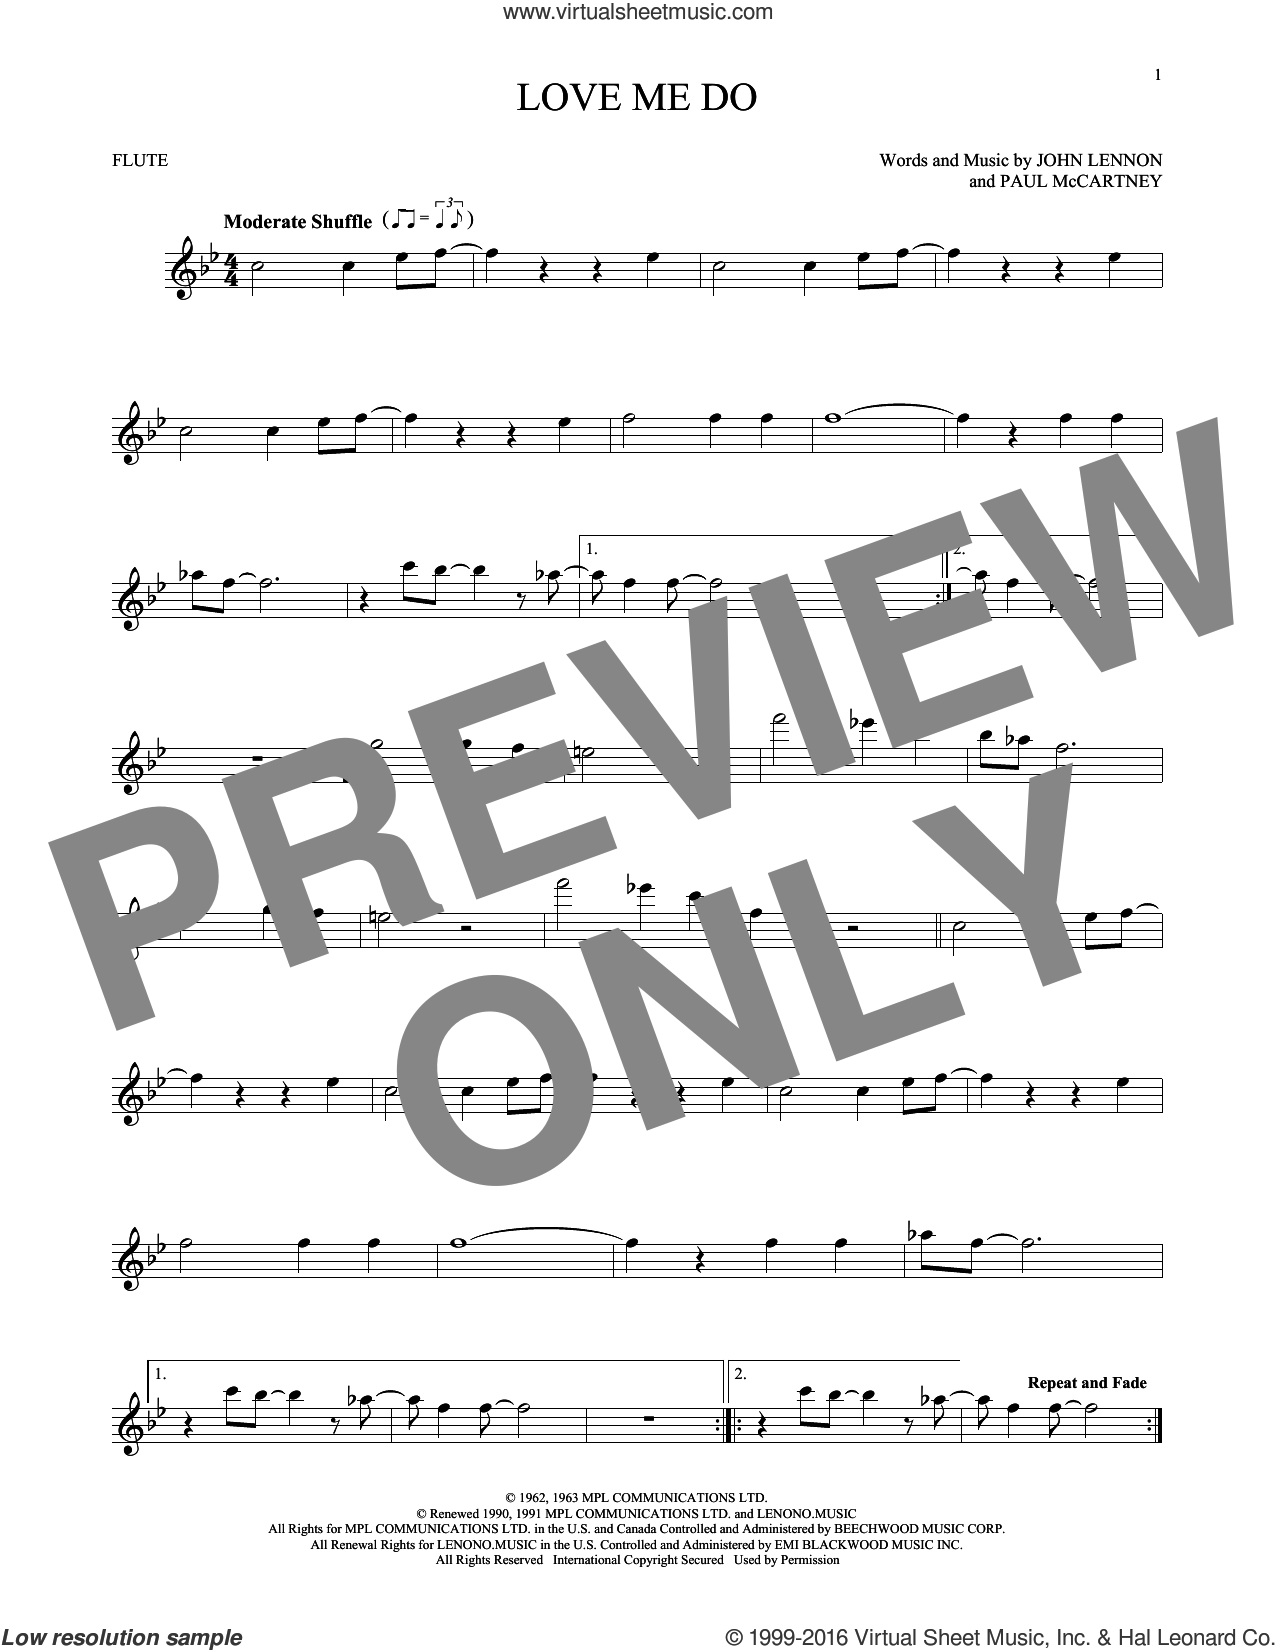 Love Me Do sheet music for flute solo by The Beatles, John Lennon and Paul McCartney, intermediate skill level